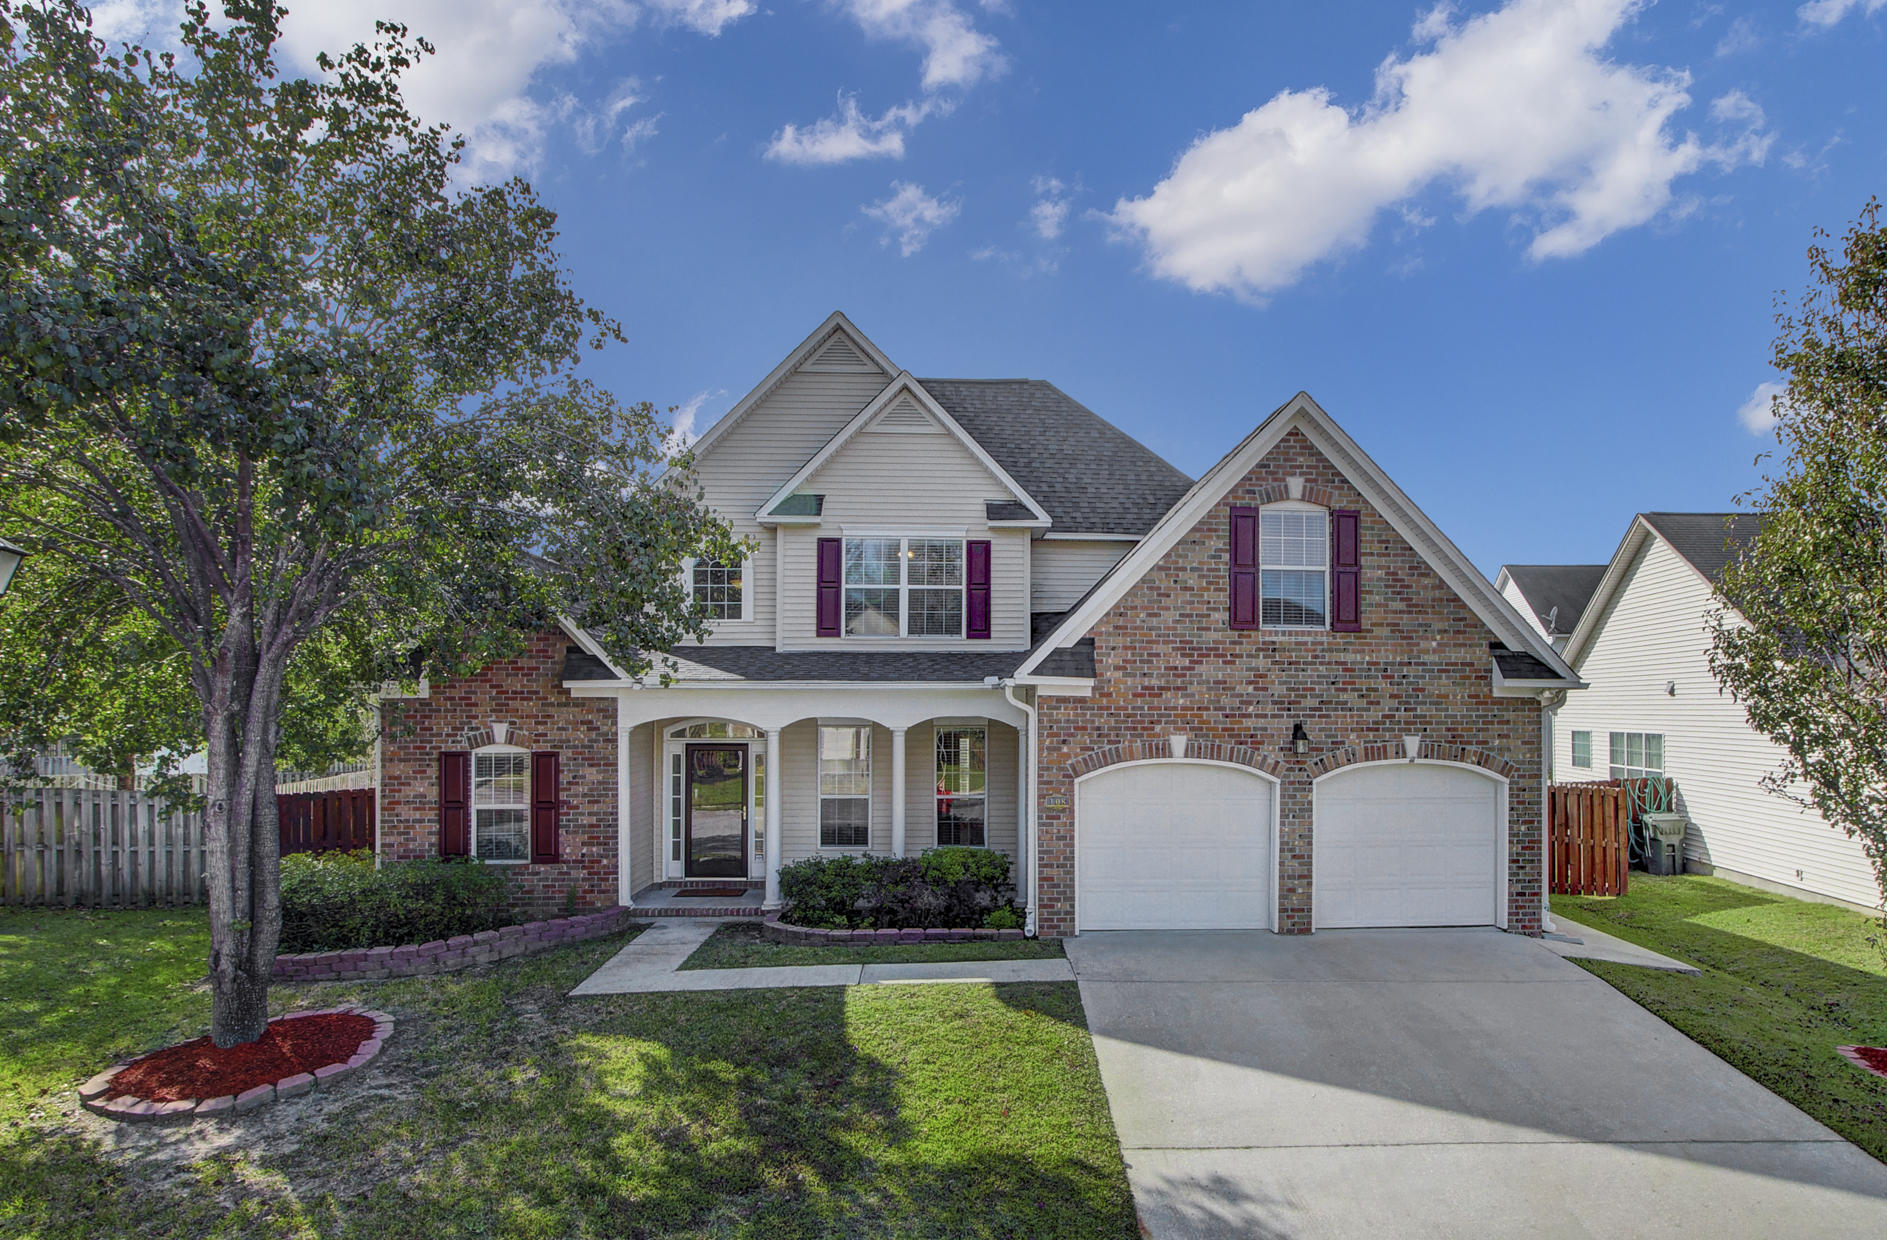 108 Seneca Circle Goose Creek, Sc 29445